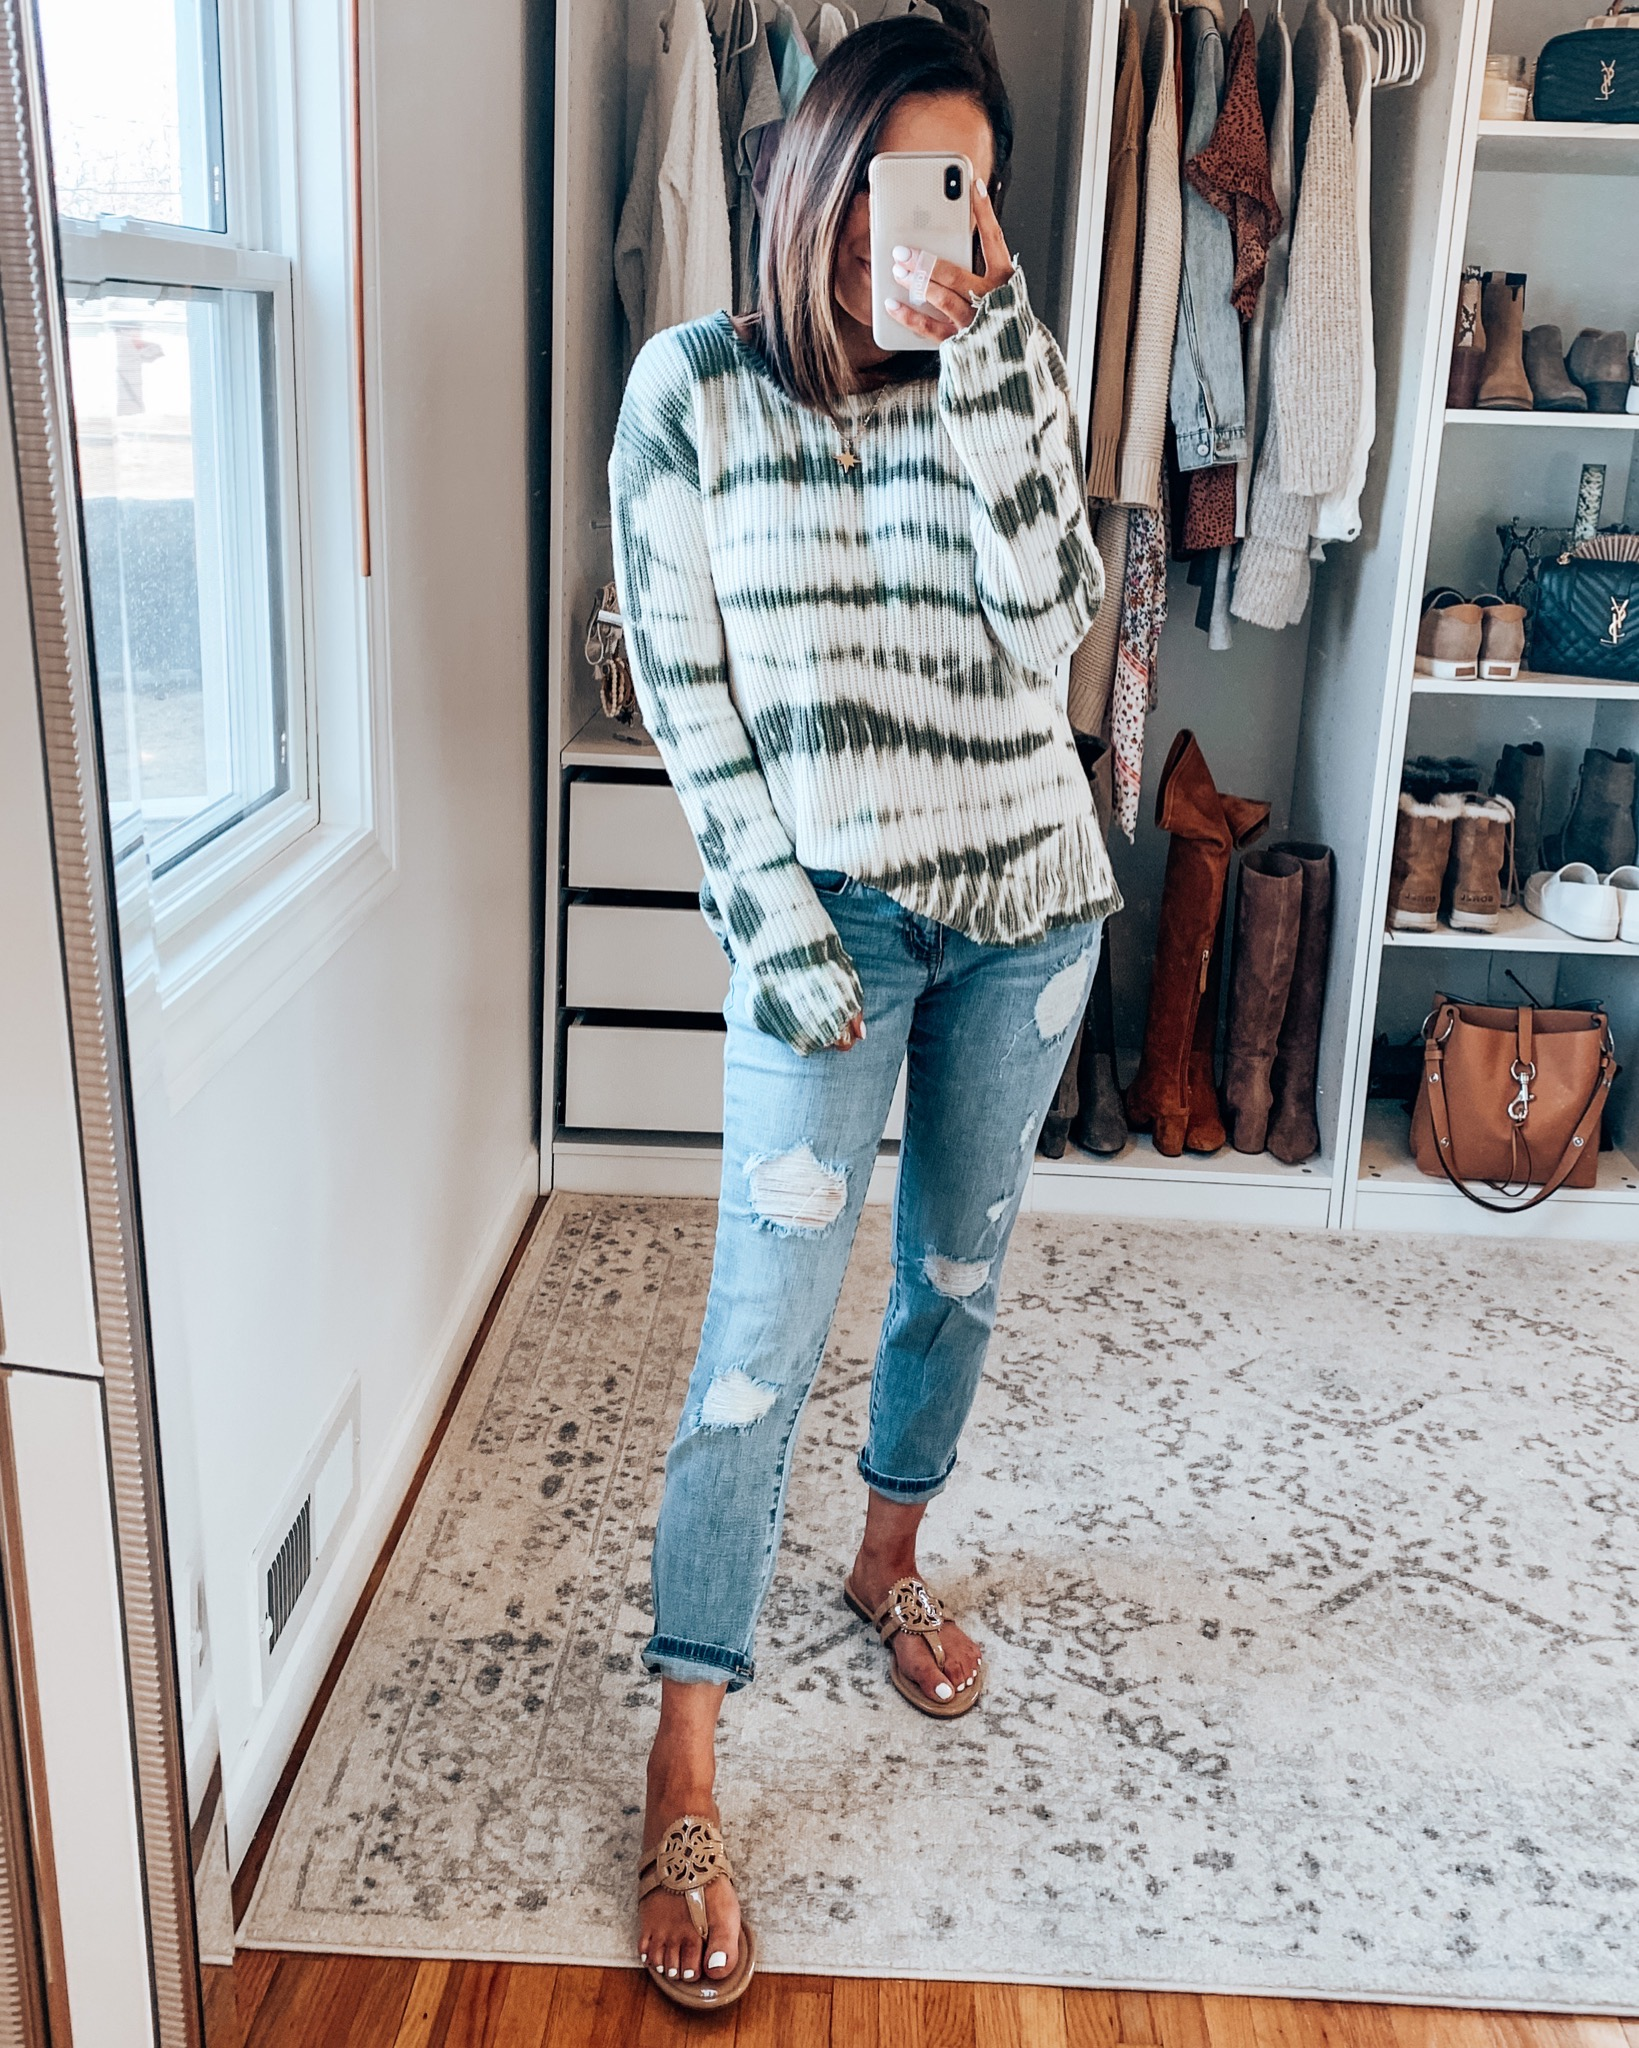 Walmart Spring Jeans | Affordable Jeans | Style Blogger Lauren Meyer shares her Favorite Denim Under $30